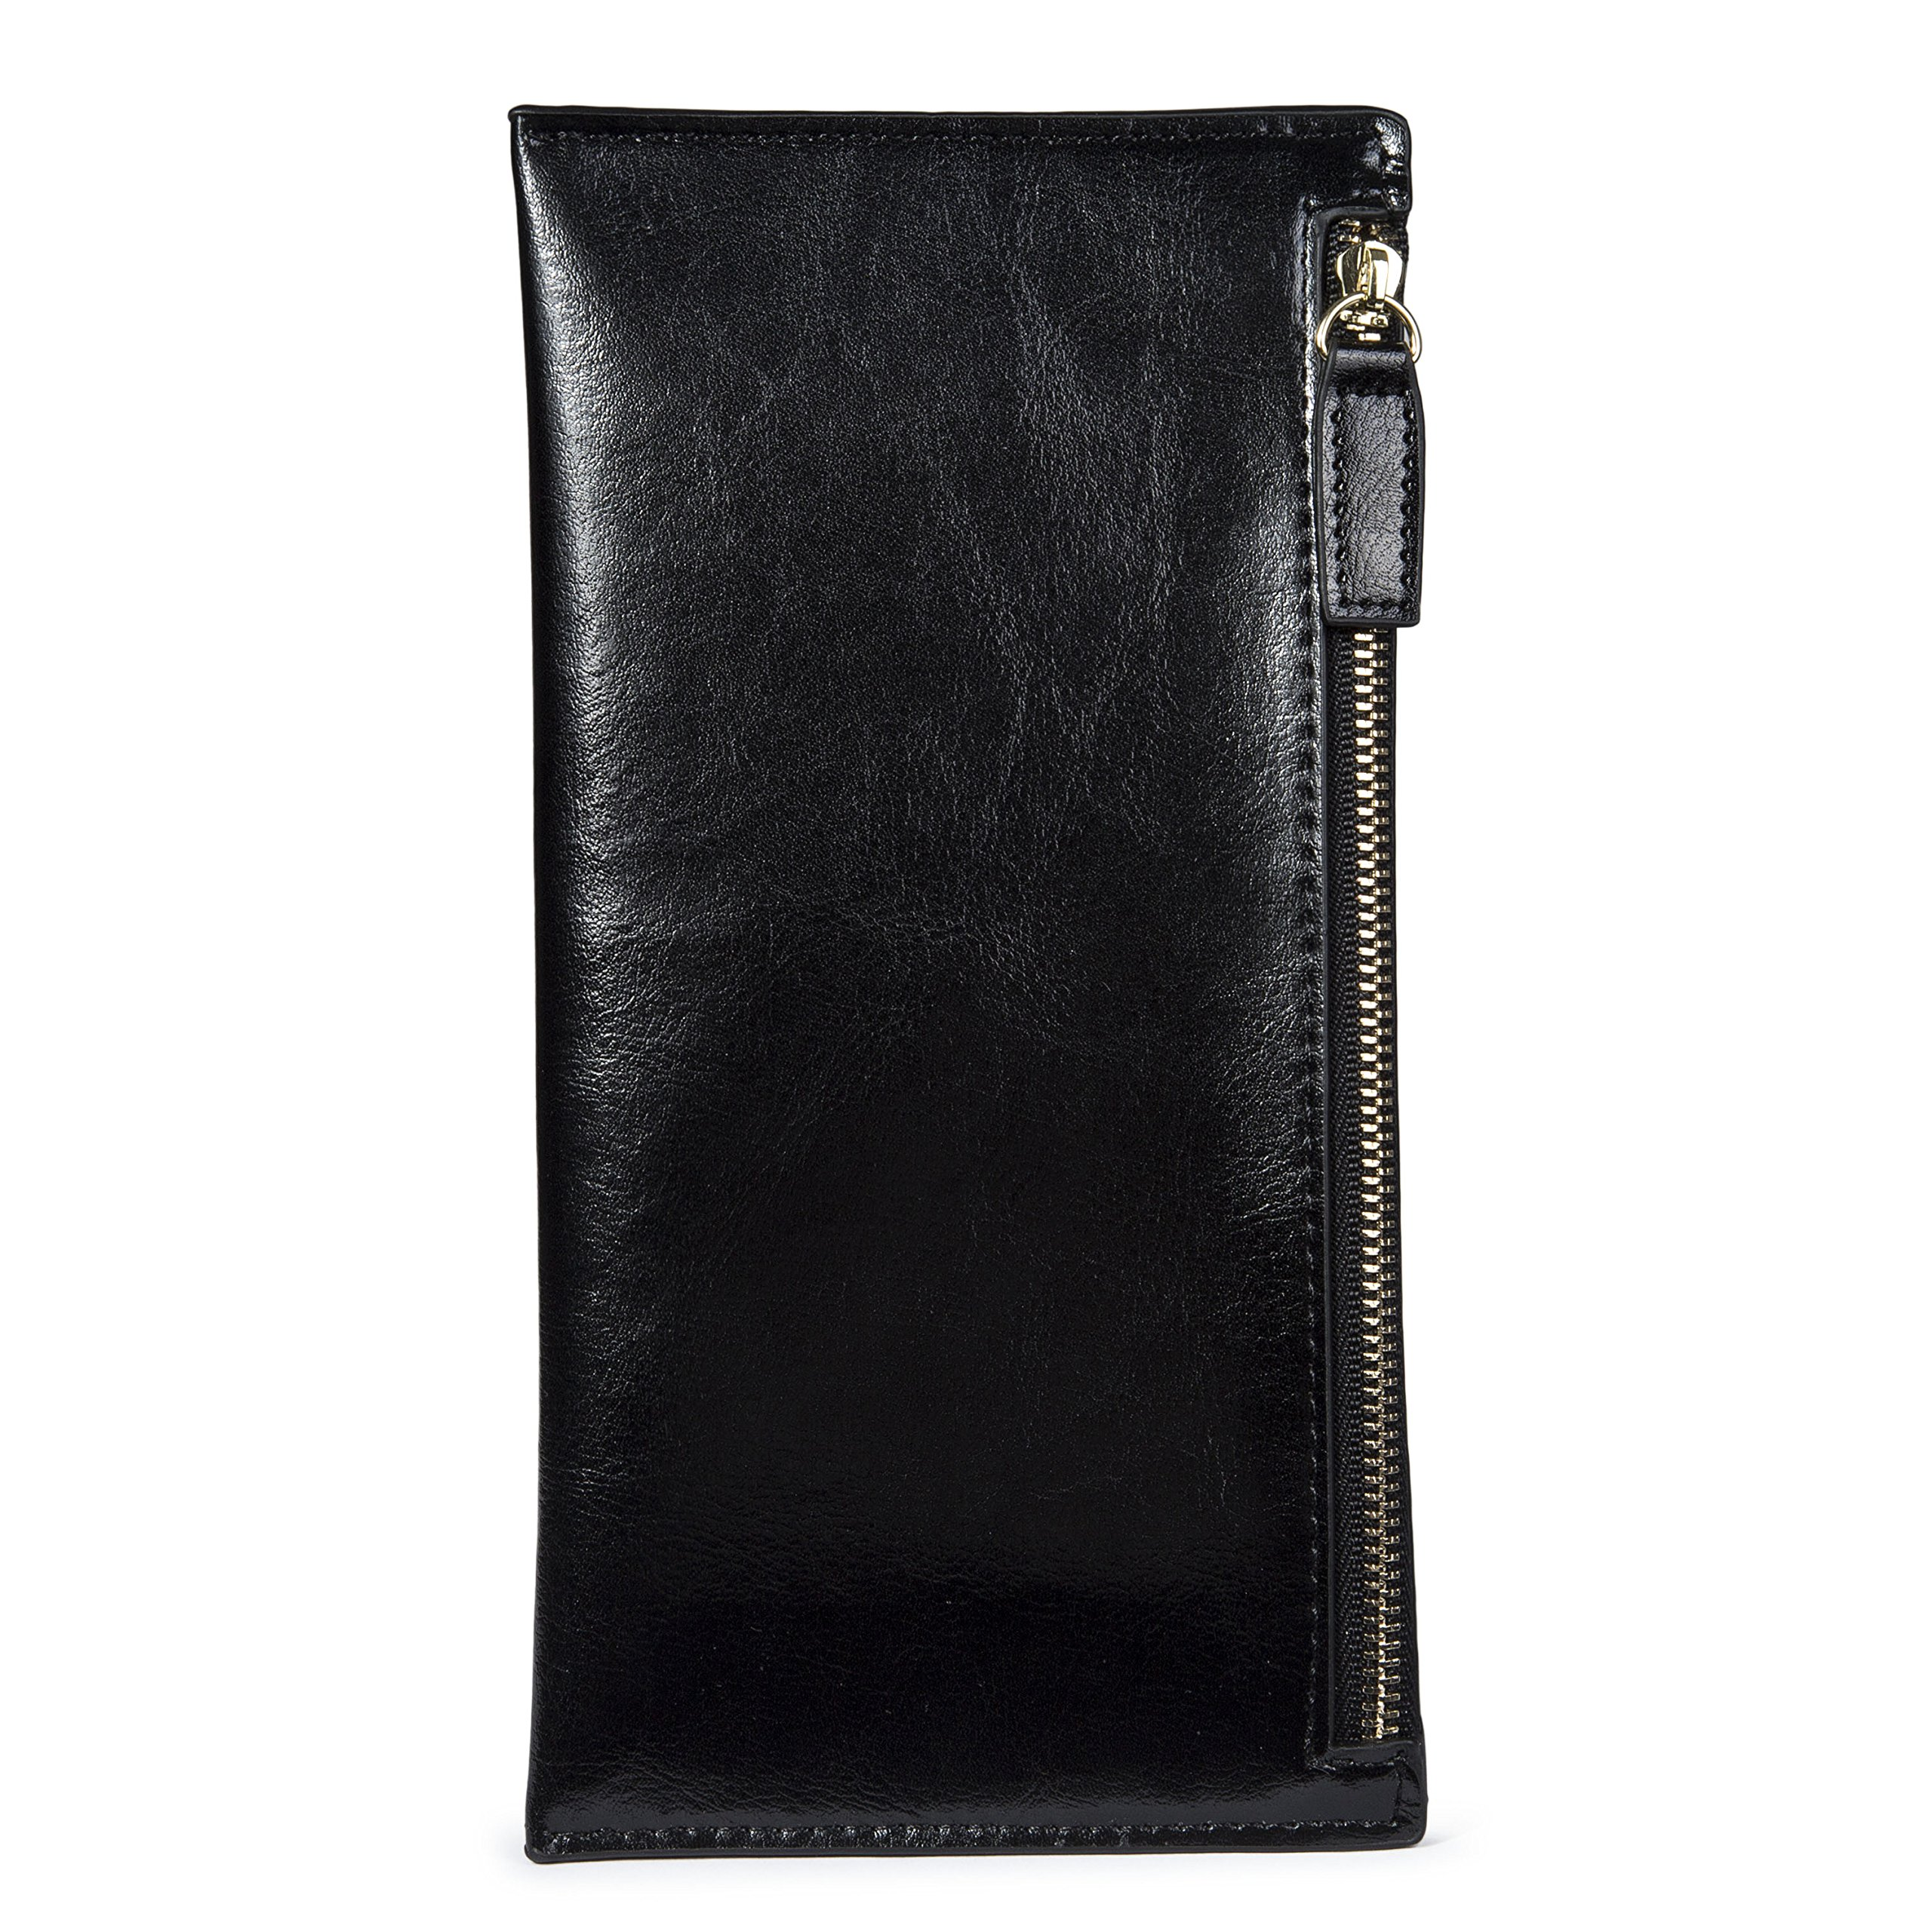 Leather Long Wallet Zipper Clutch Coin Purse Slim Card Case Holder for Women with 8 Card Slots Black